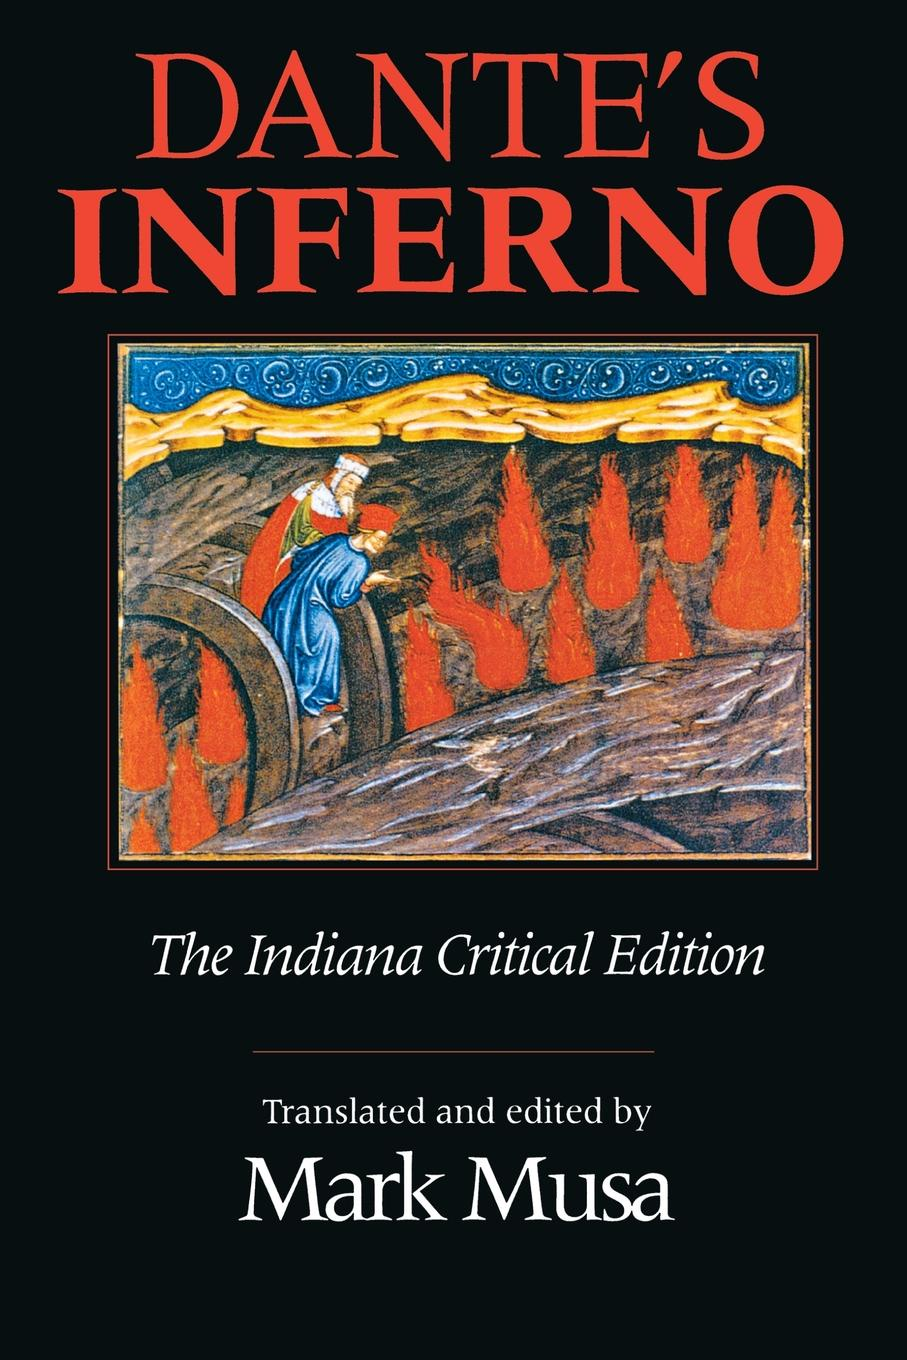 Mark Musa, Dante Alighieri, Dante Alighieri Dante's Inferno, the Indiana Critical Edition dante alighieri the divine comedy inferno